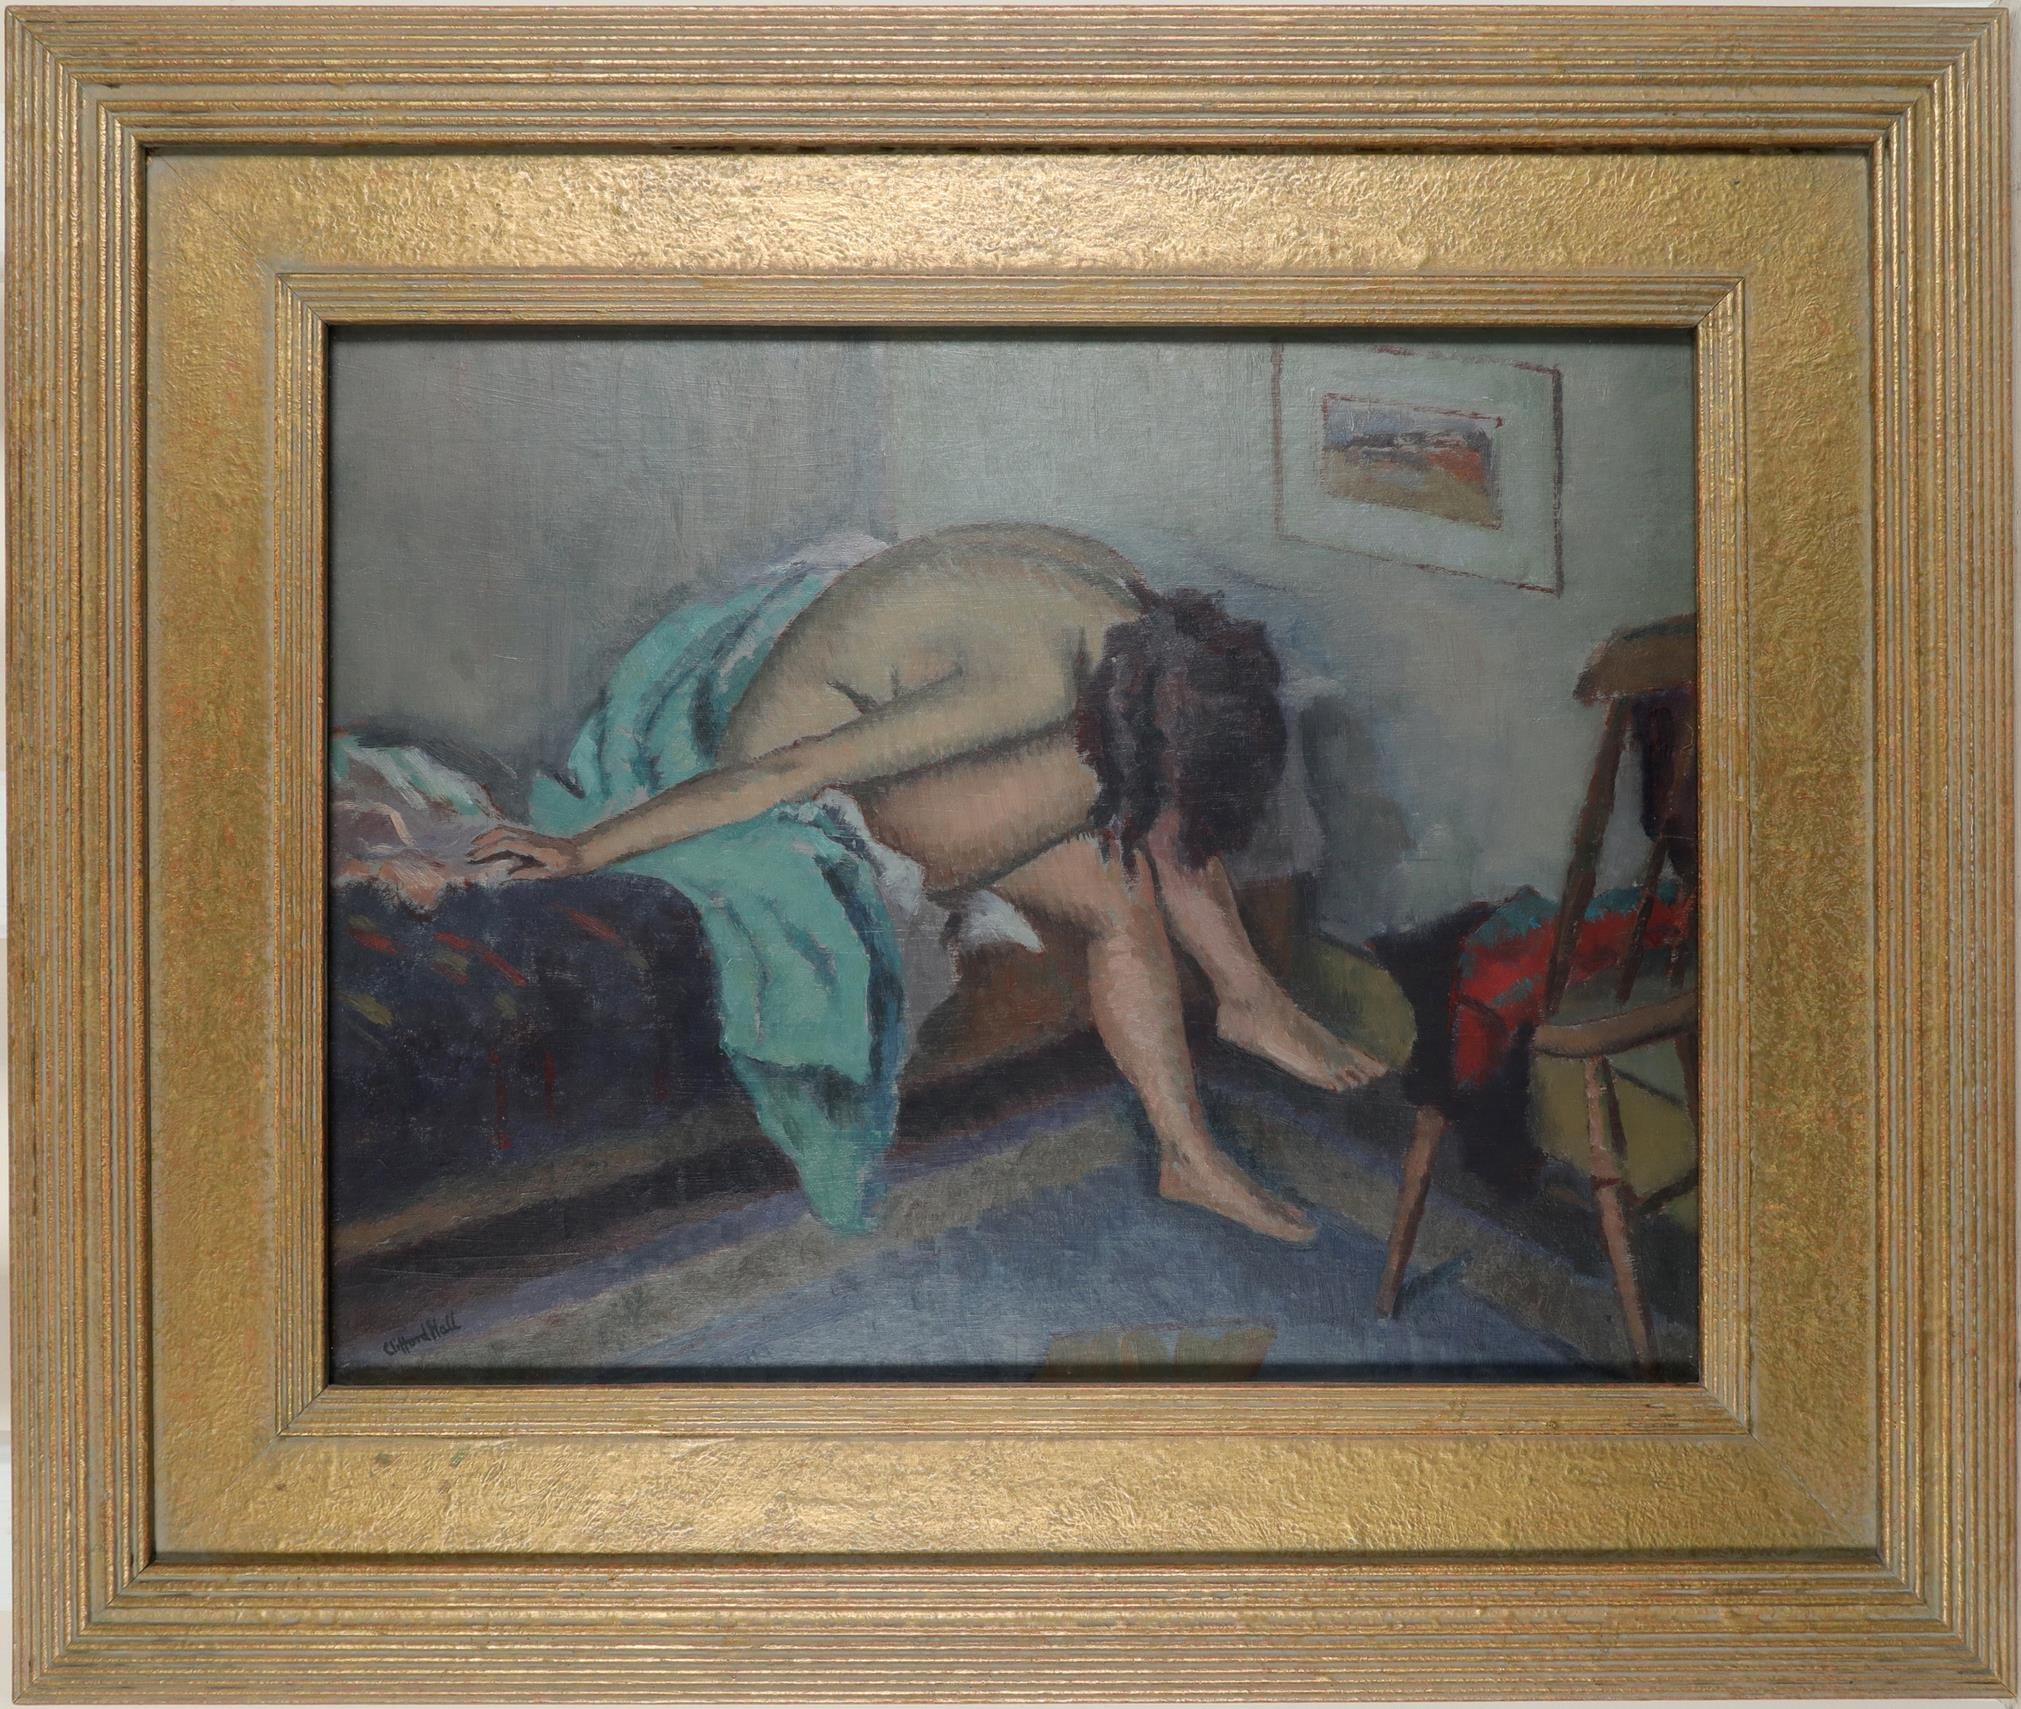 ‡Clifford Hall RBA, ROI (1904-1973) Female nude seated on a bed Signed Clifford Hall (lower left) - Image 2 of 3